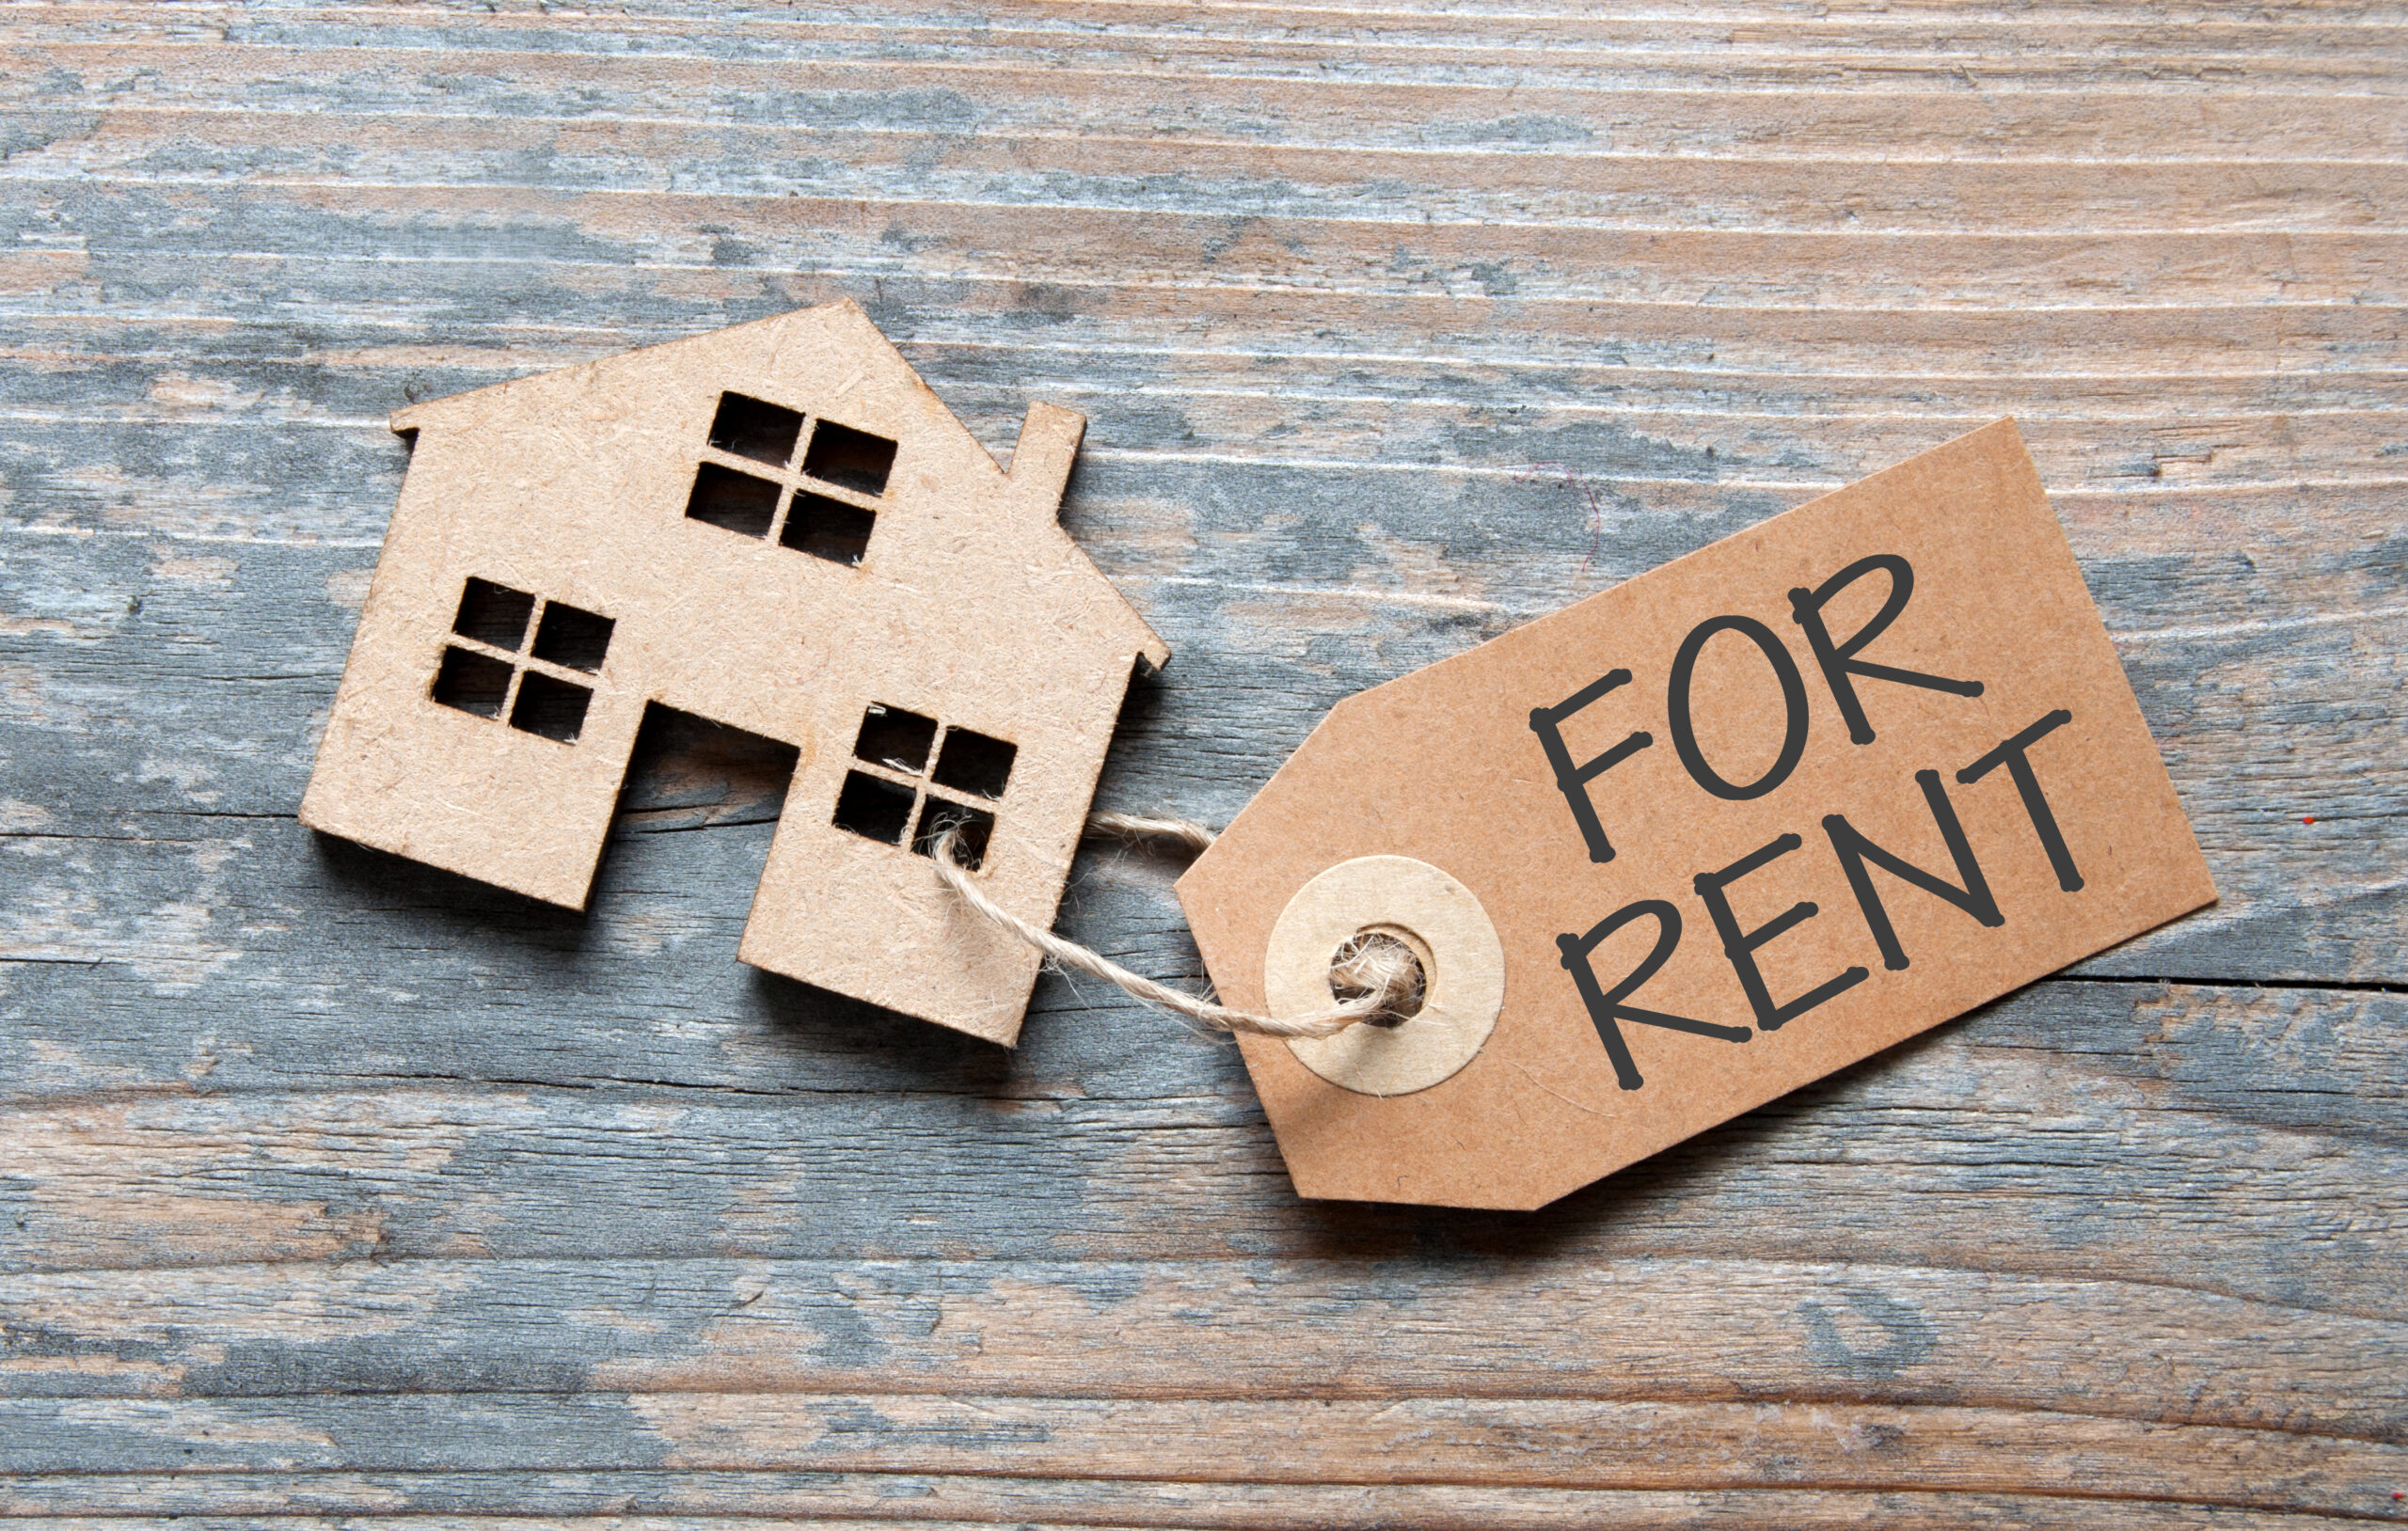 Tenancy Protection Act of 2019